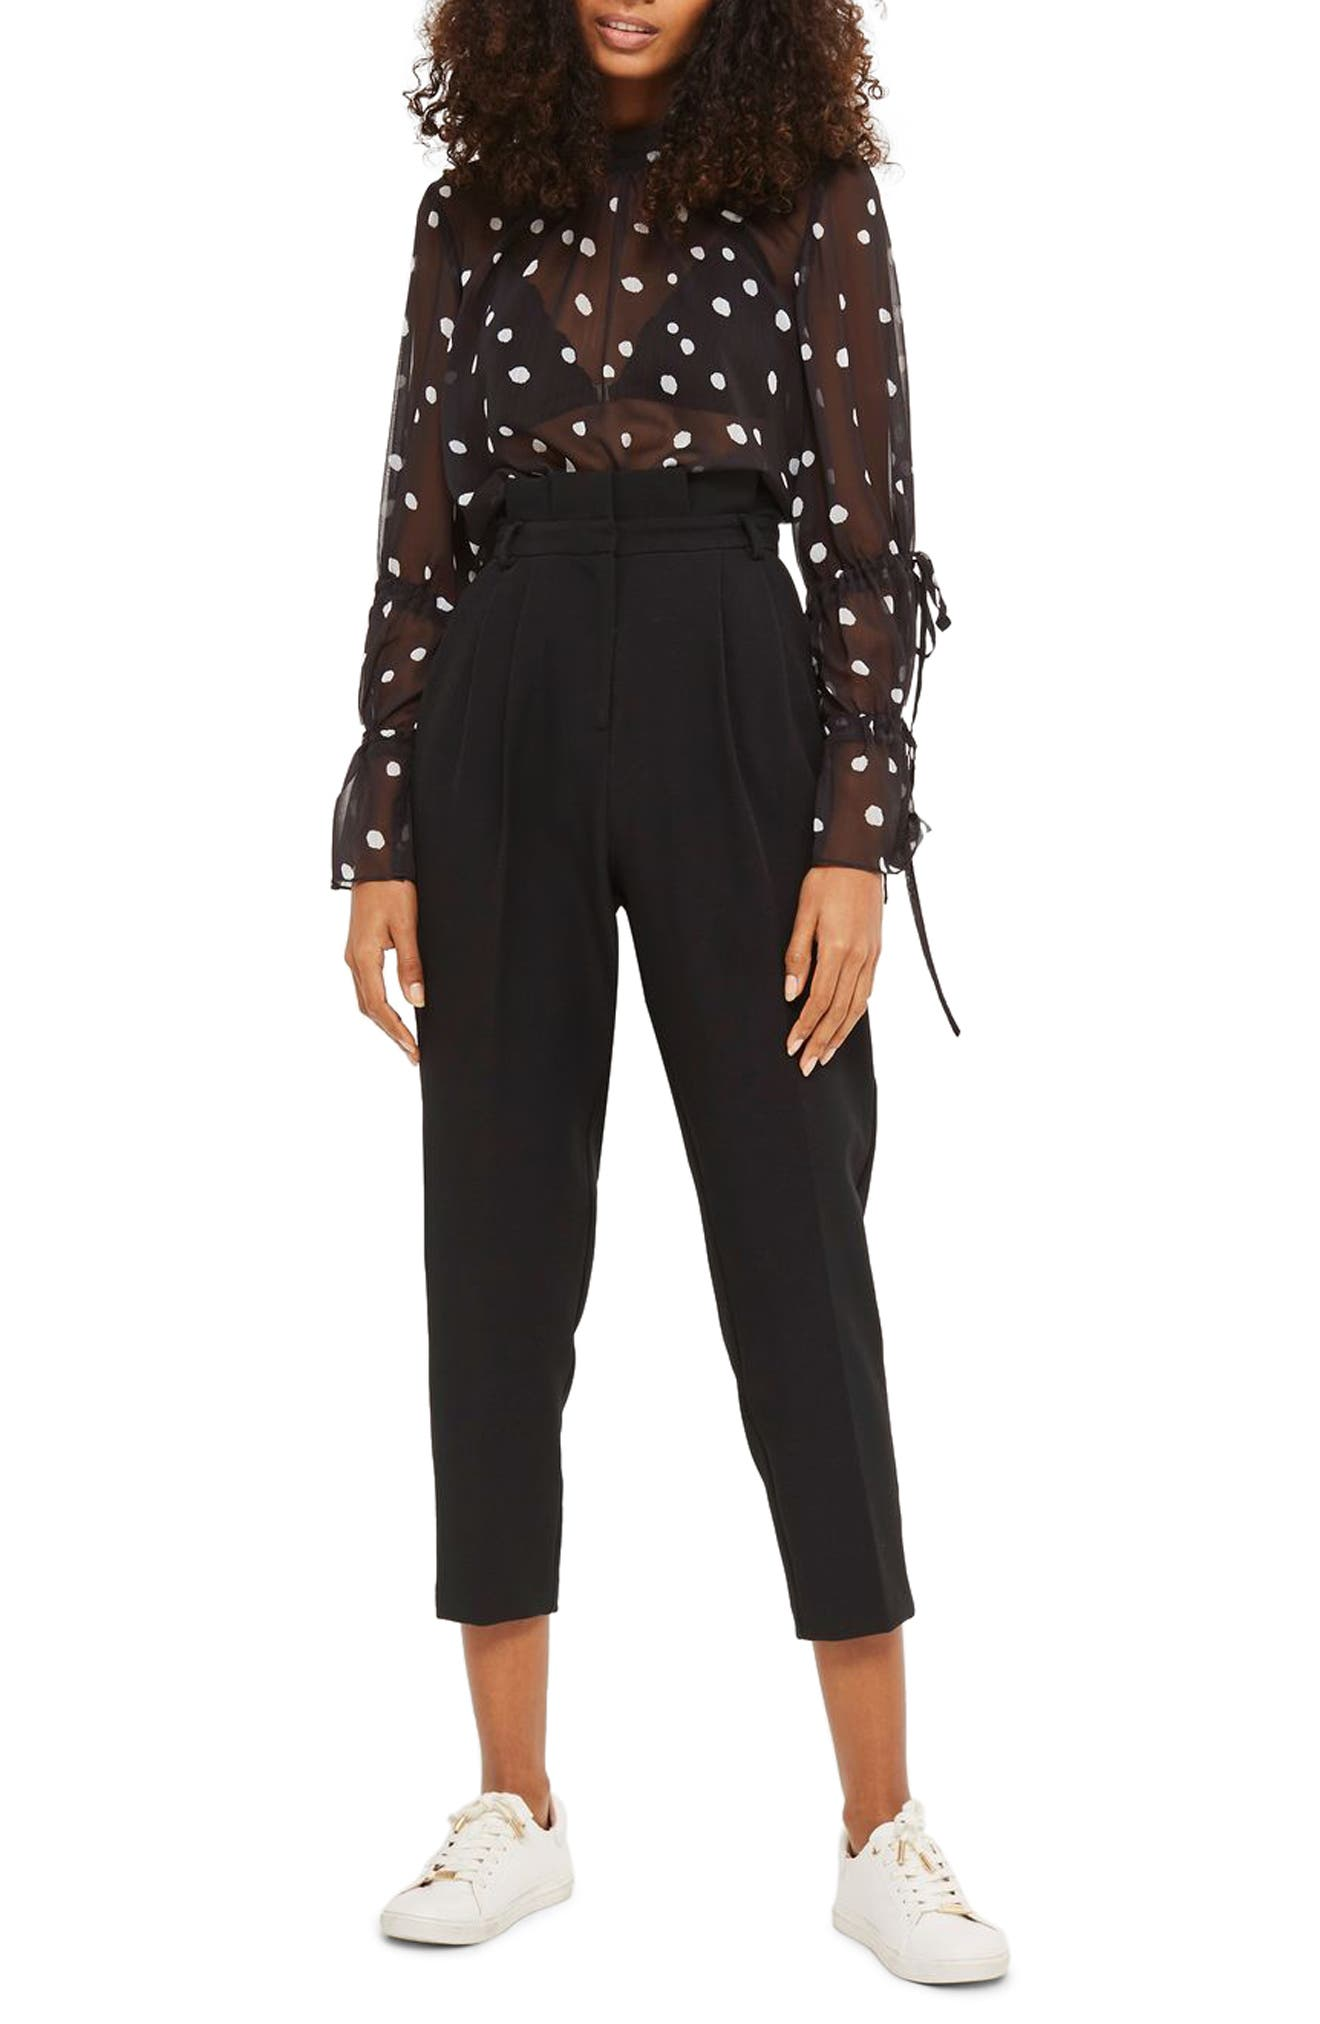 Topshop Pleated Waist Peg Trousers